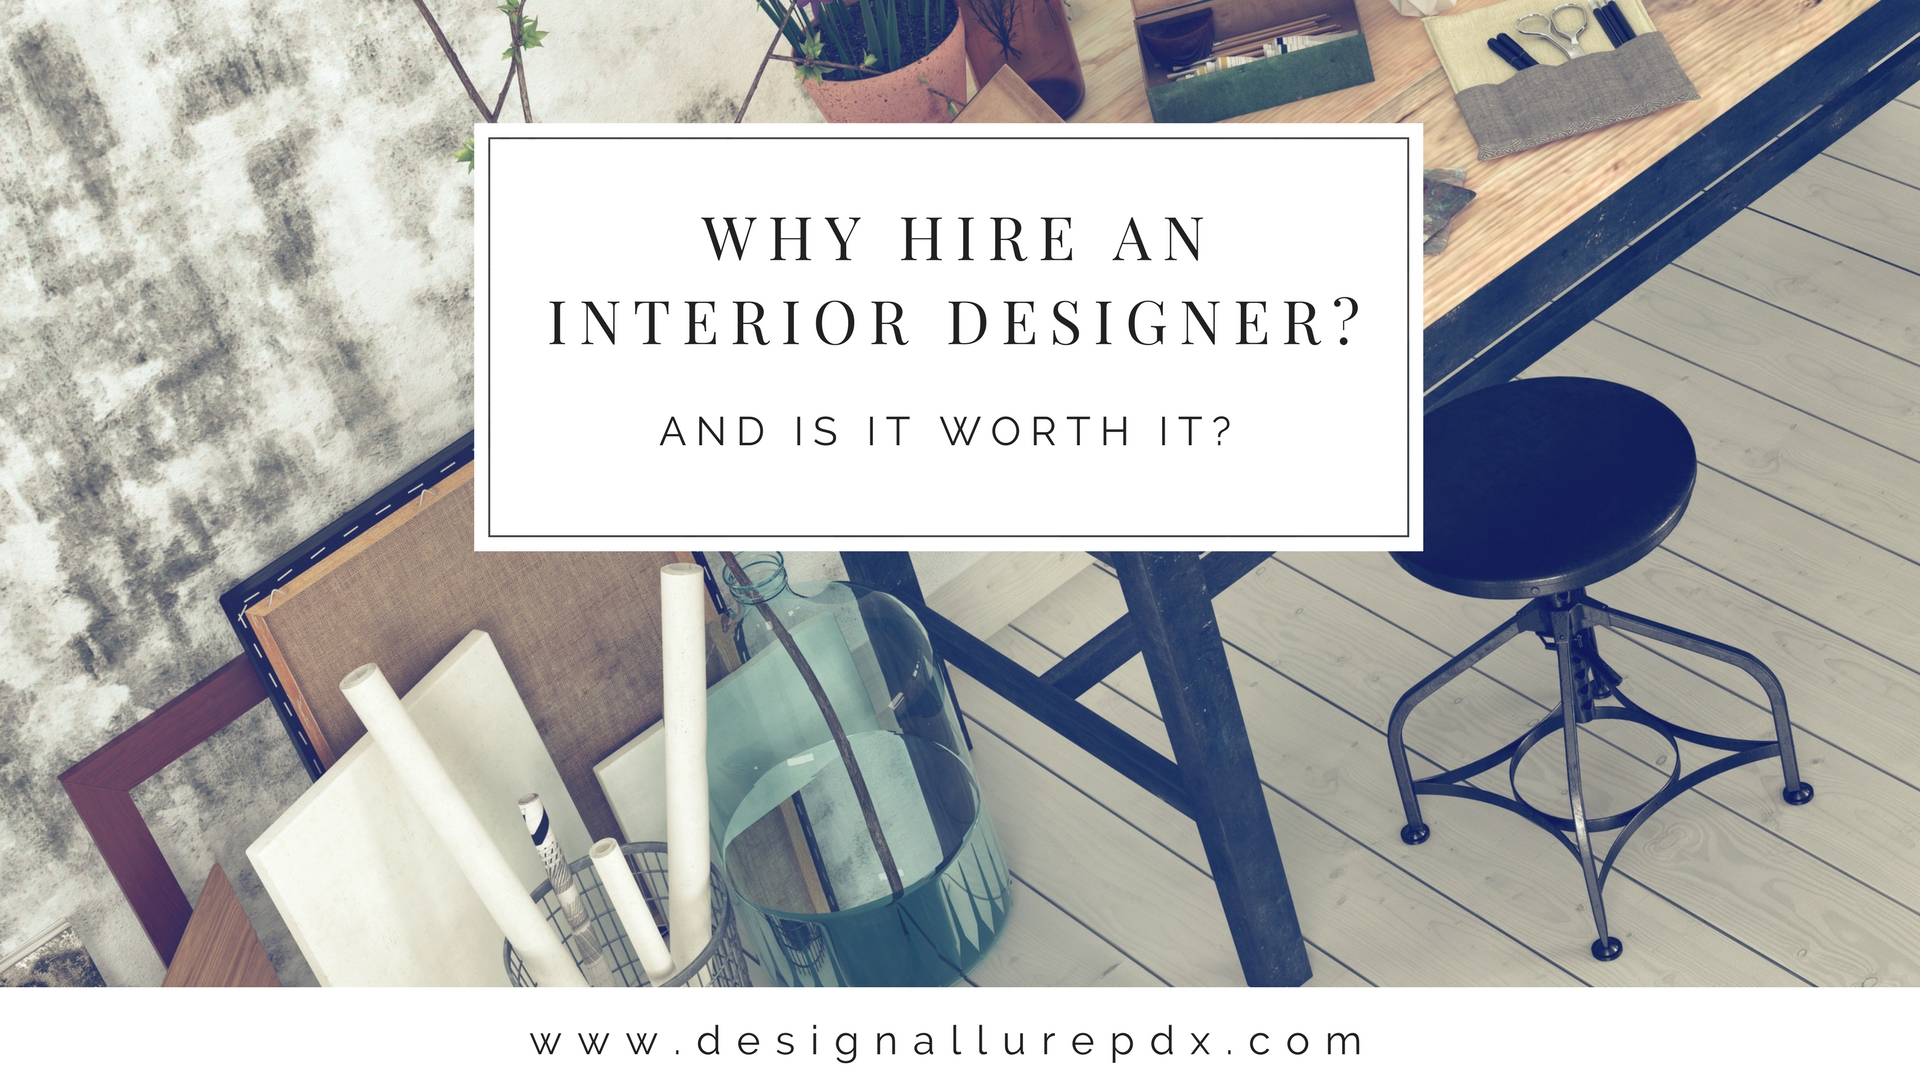 Inspired design diaries l interior design blog l portland - Hire interior designer student ...